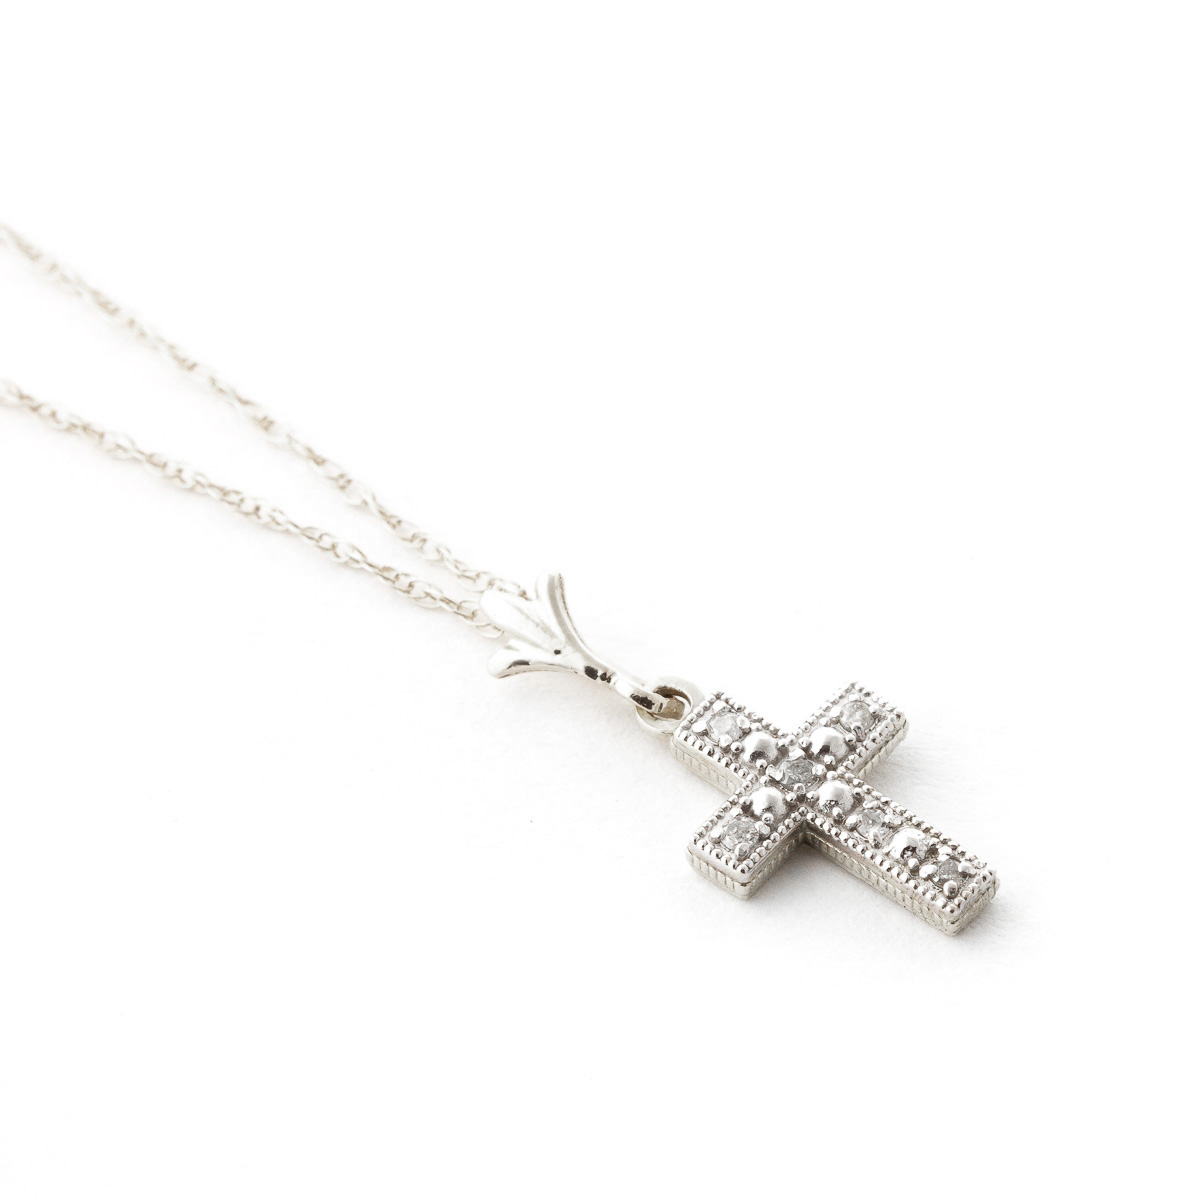 Diamond cross pendant necklace 003 ctw in 9ct white gold 3064w diamond cross pendant necklace 003 ctw in 9ct white gold aloadofball Images